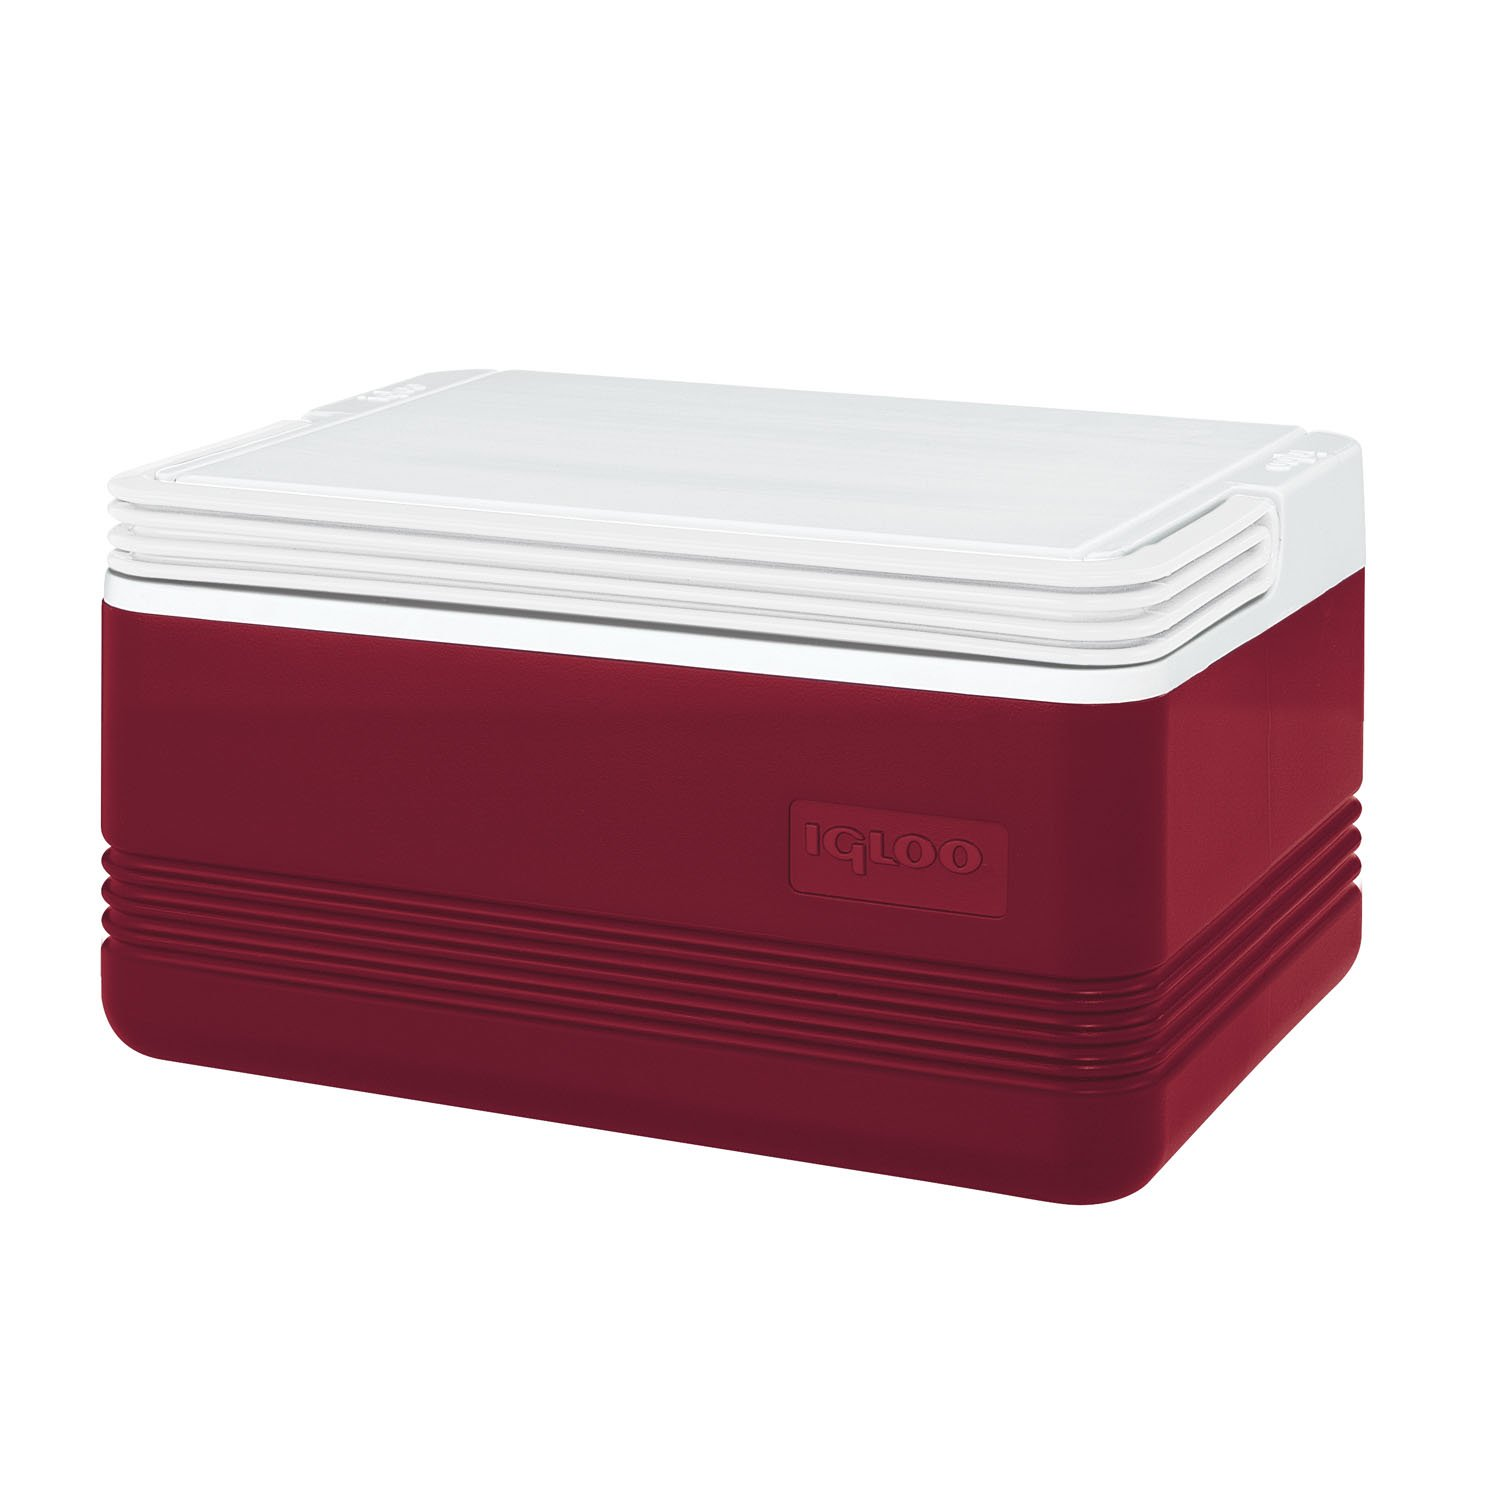 Igloo Legend 6-Can Coolers, Red